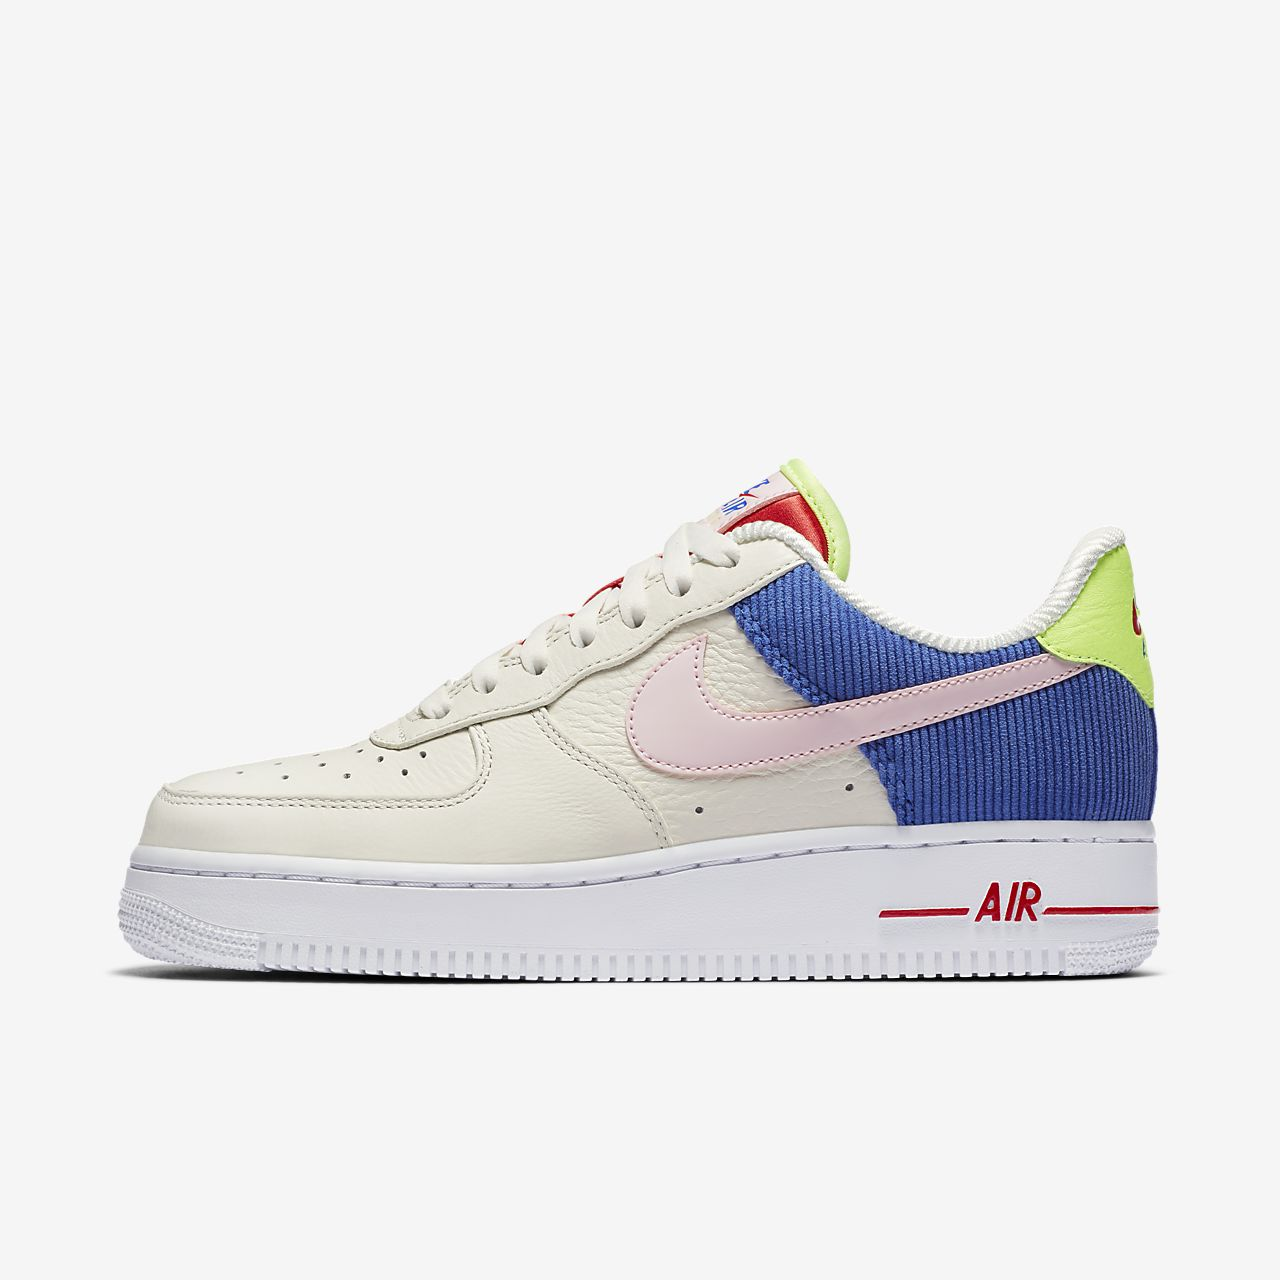 ... Chaussure Nike Air Force 1 Low pour Femme